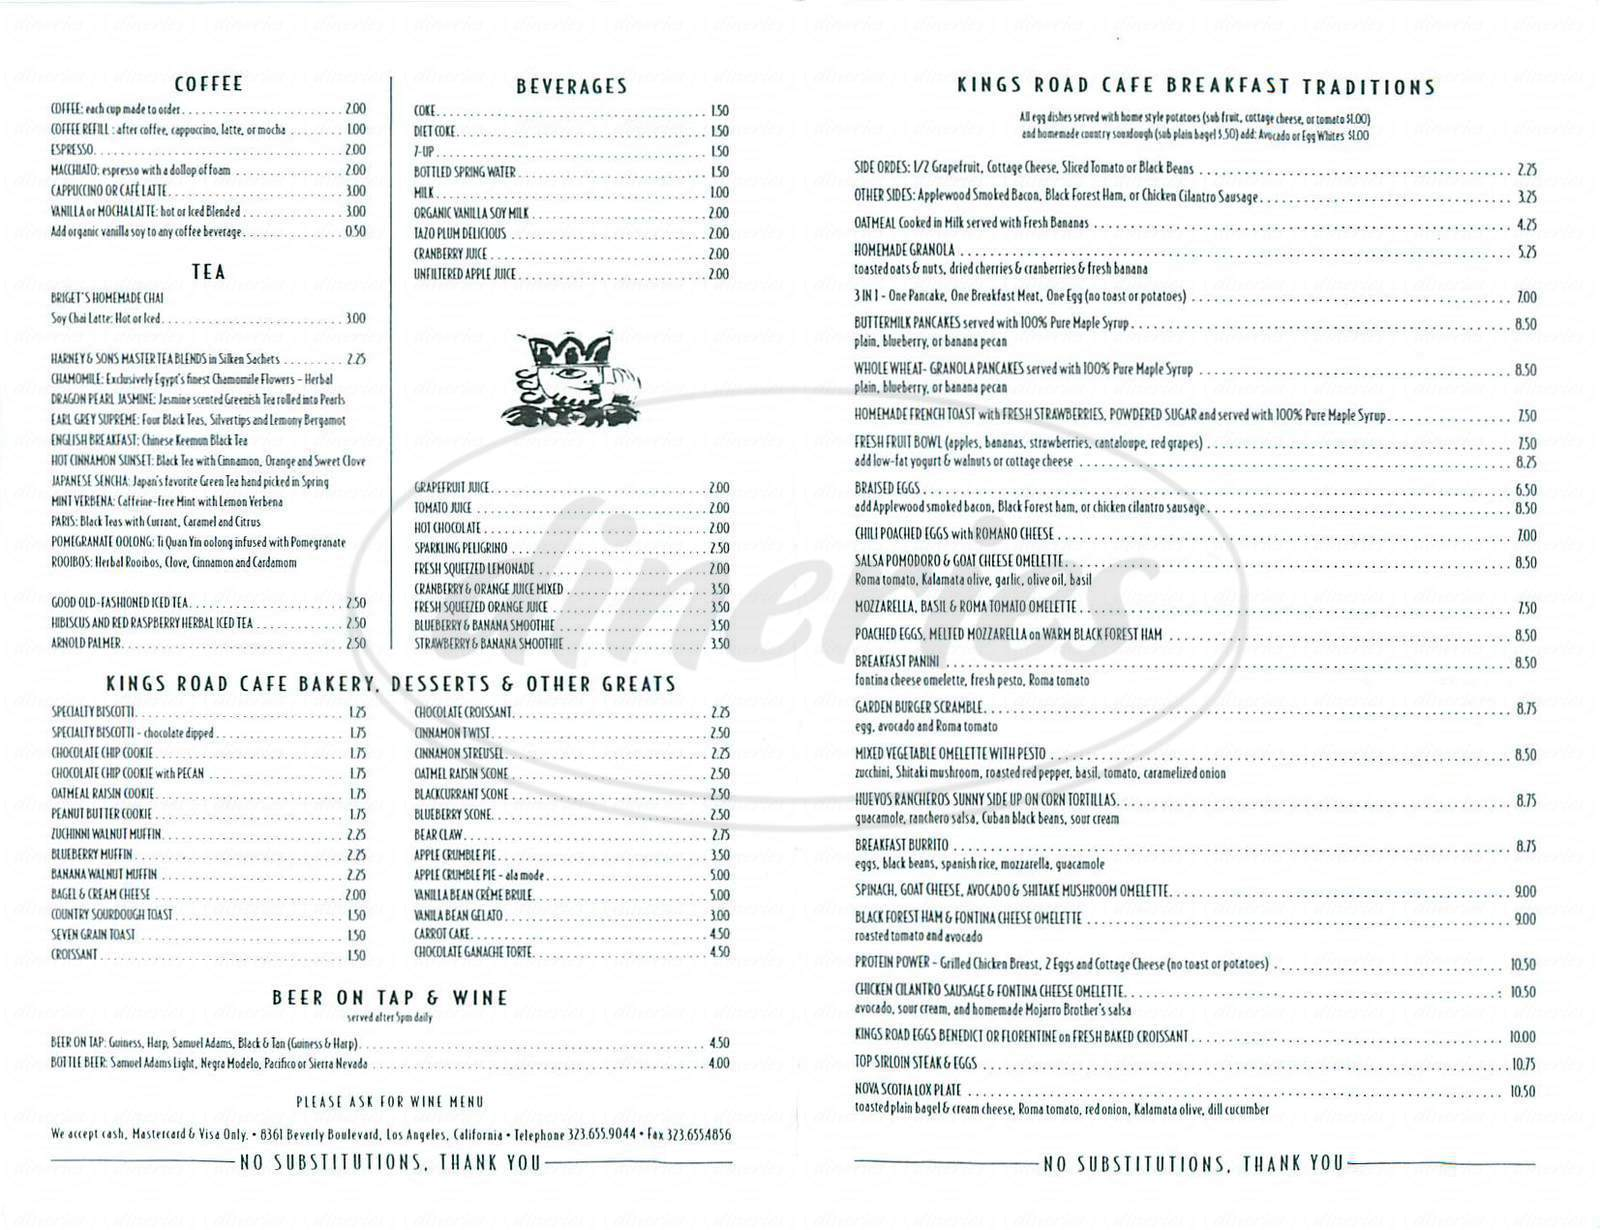 menu for Kings Road Cafe